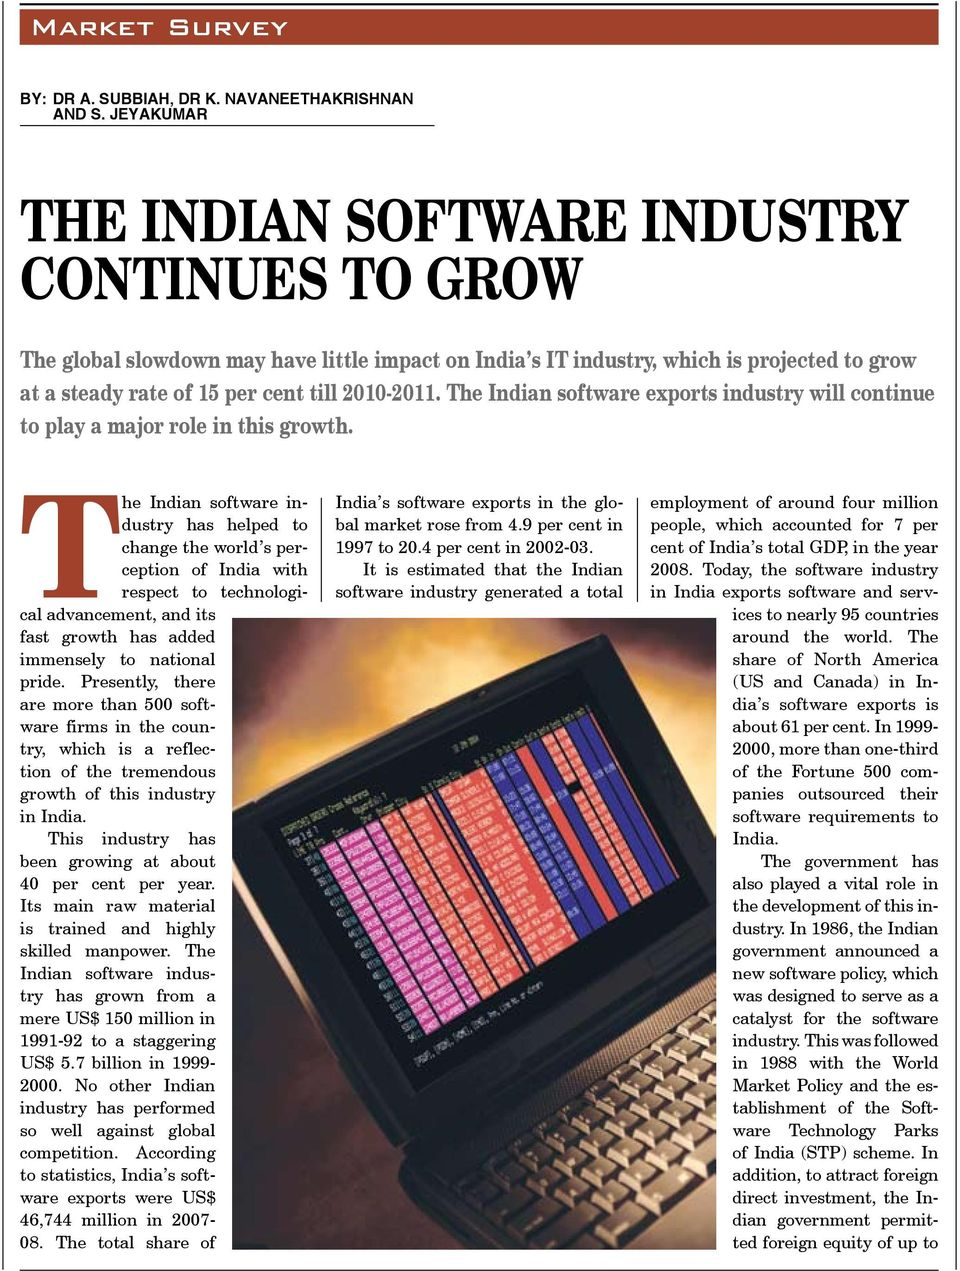 The Indian software exports industry will continue to play a major role in this growth.